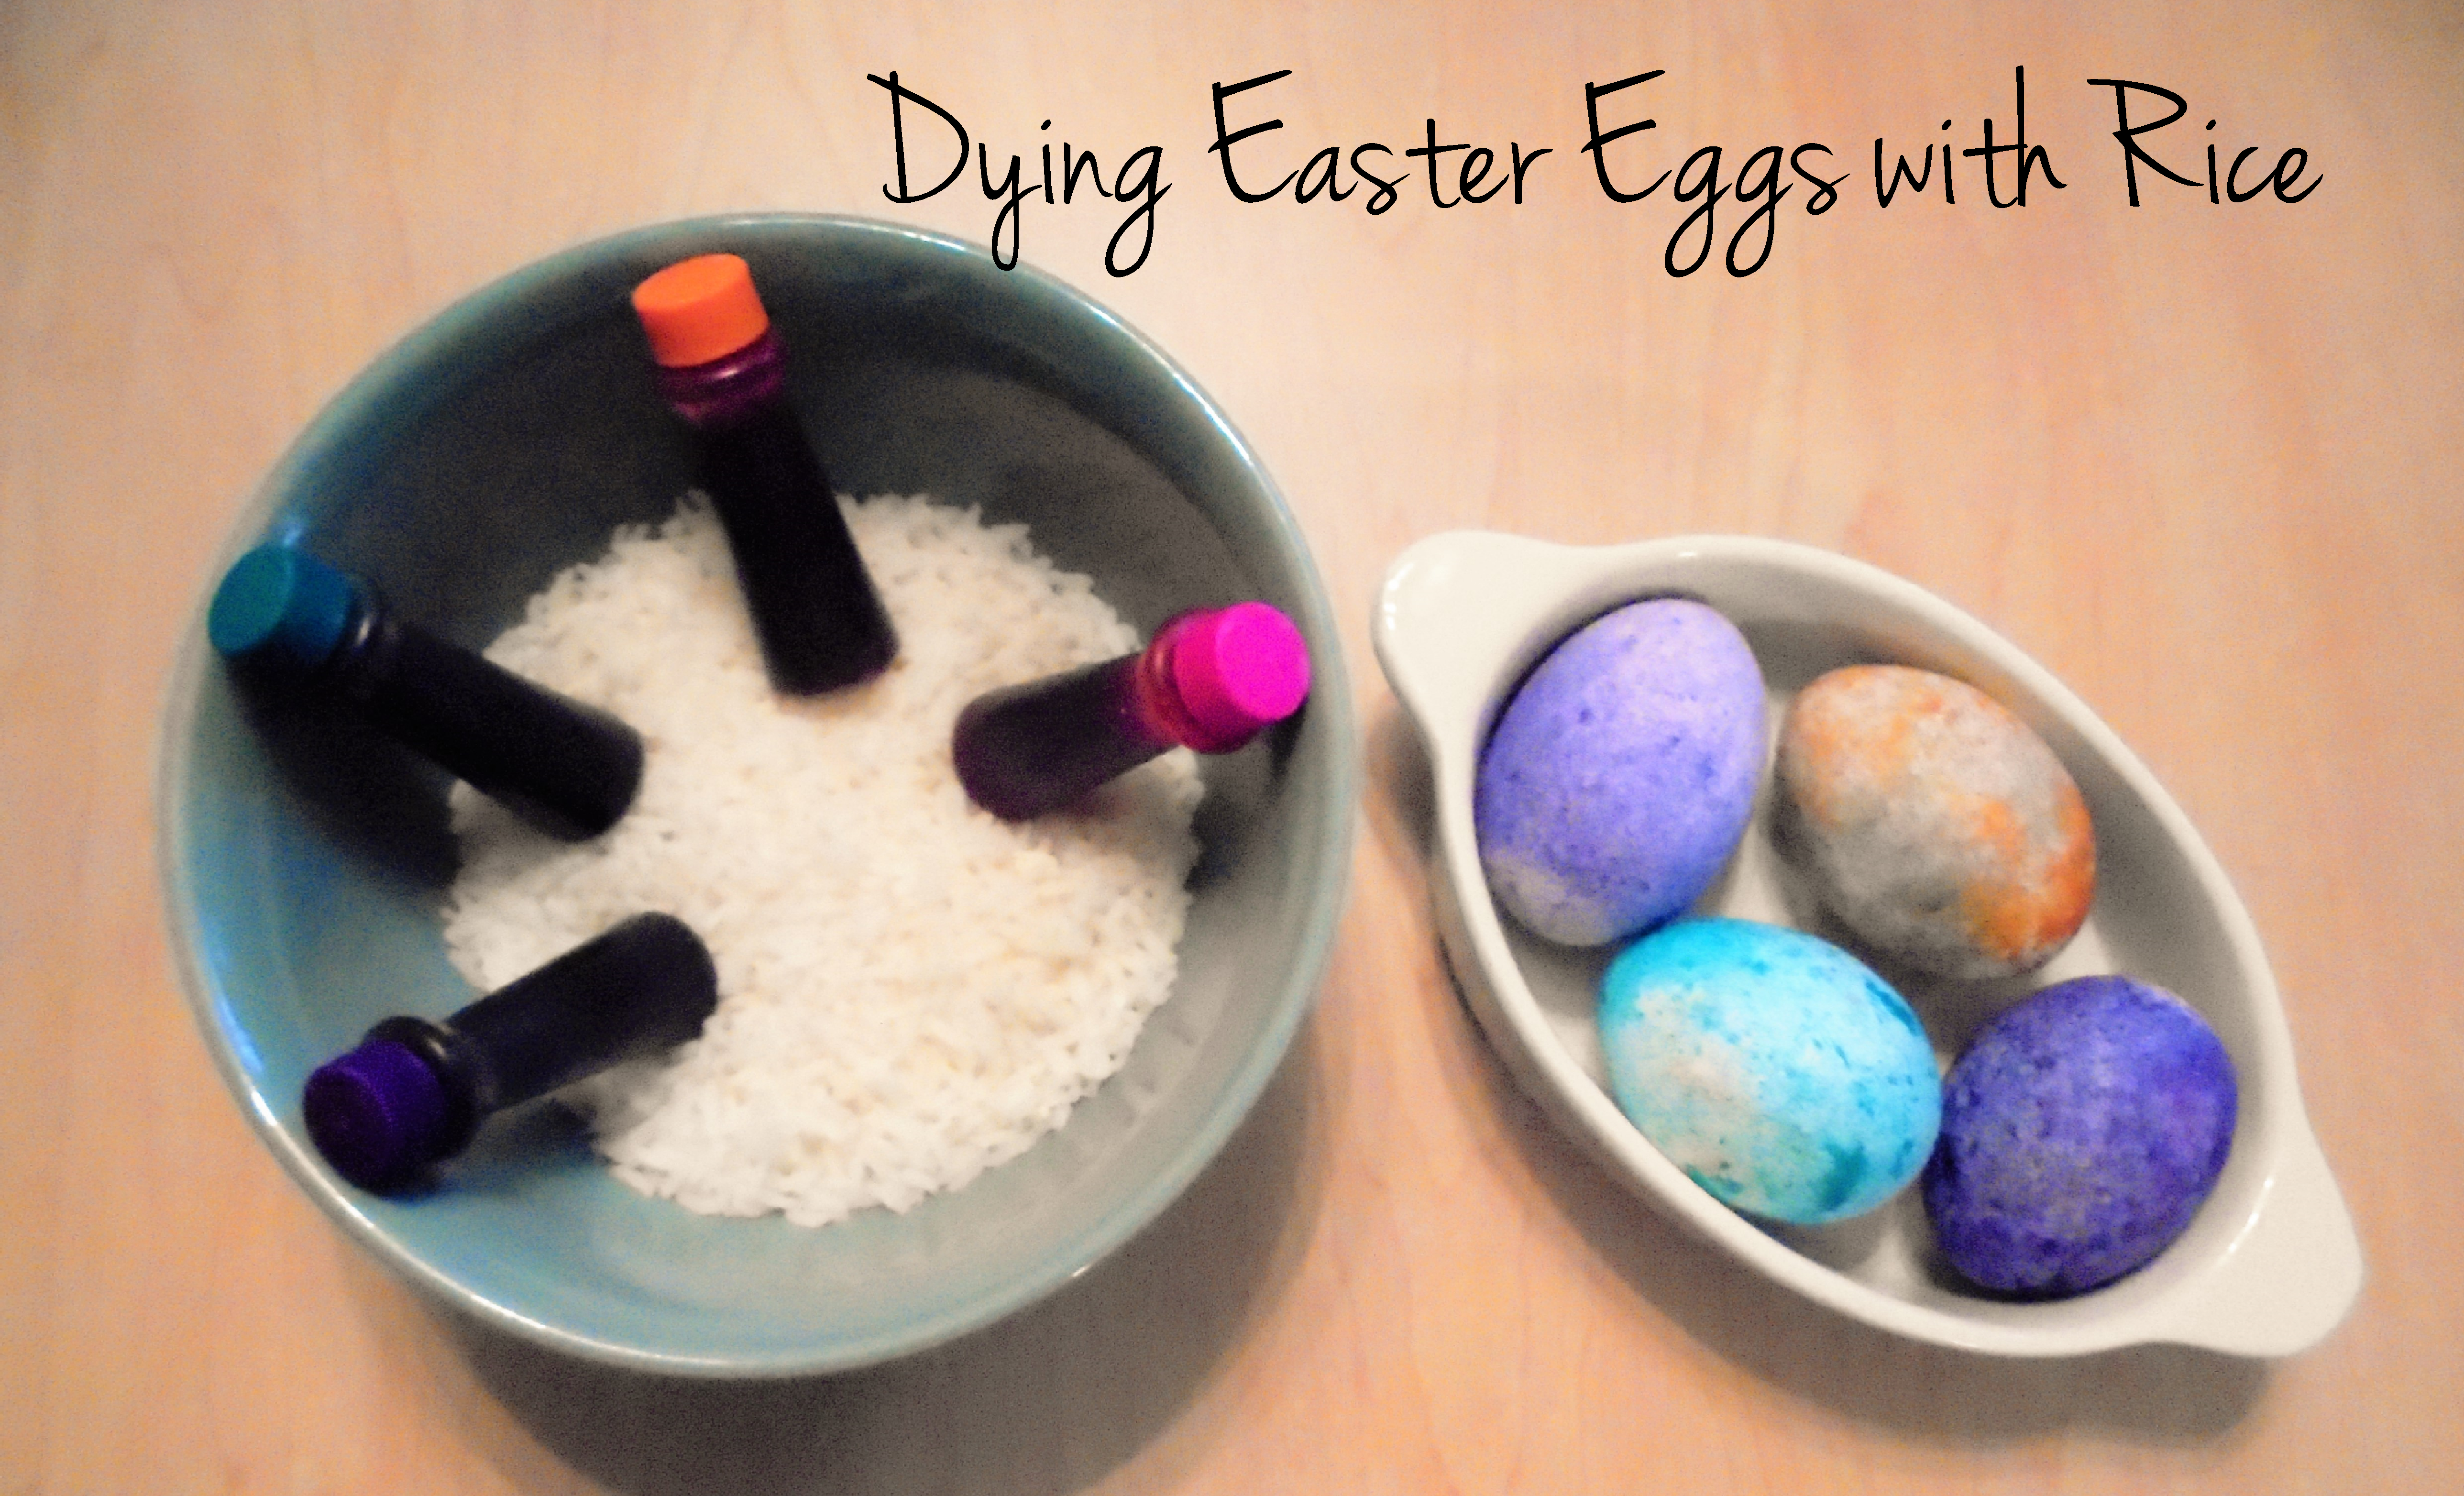 dying easter eggs with rice and food coloring, dying easter eggs, easter eggs, food coloring easter eggs, dying easter eggs with rice, homemade easter eggs